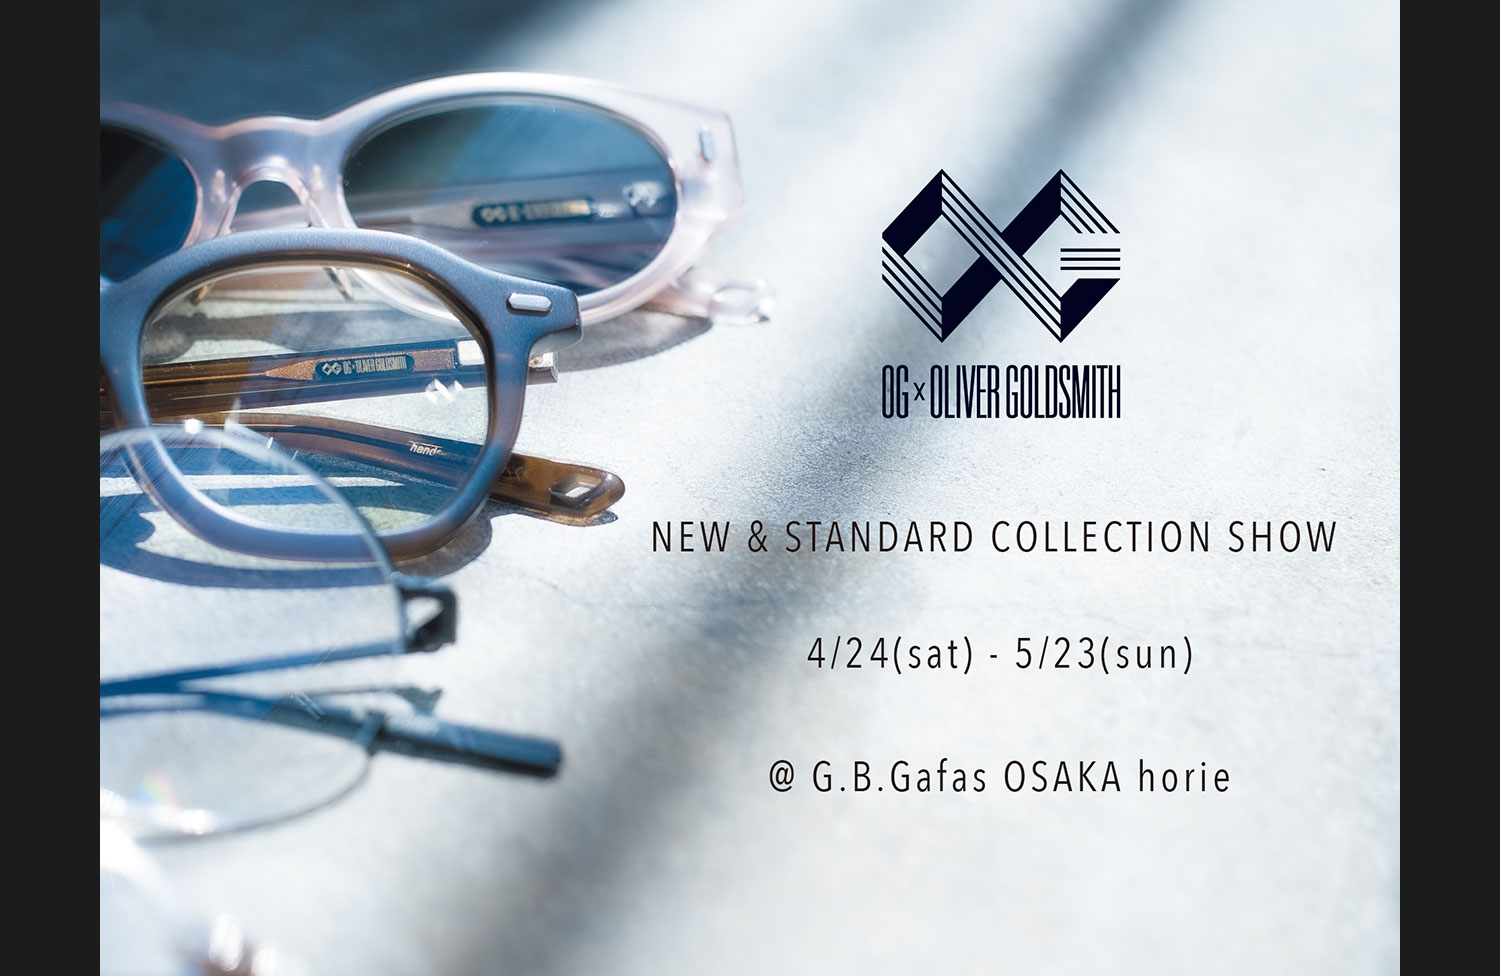 OG x OLIVER GOLDSMITH New & Standard Collection Show @G .B.Gafas OSAKA horie